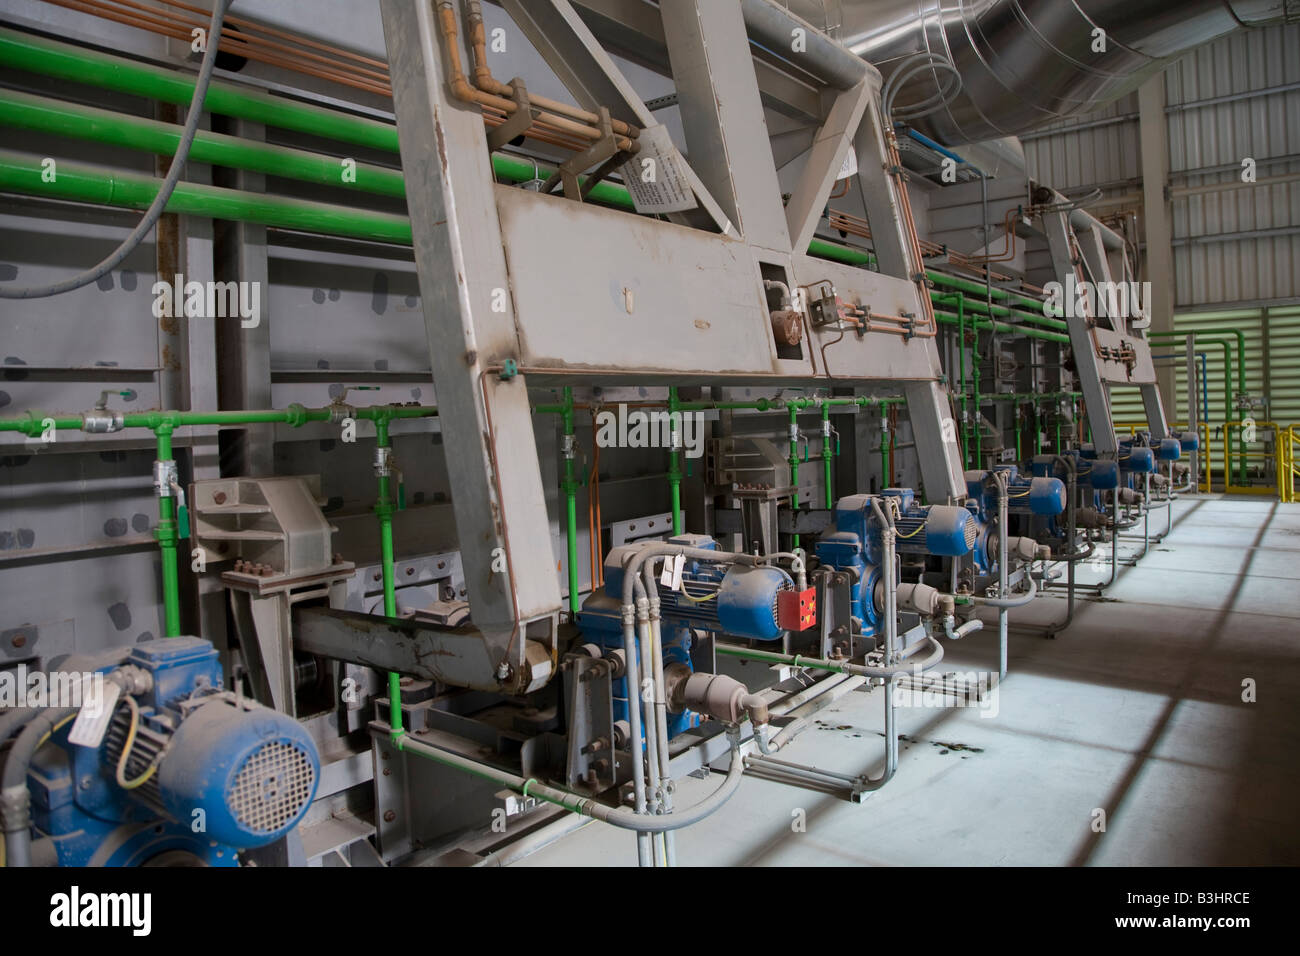 heavy industrial equipment on production line at EISF Steel Plant